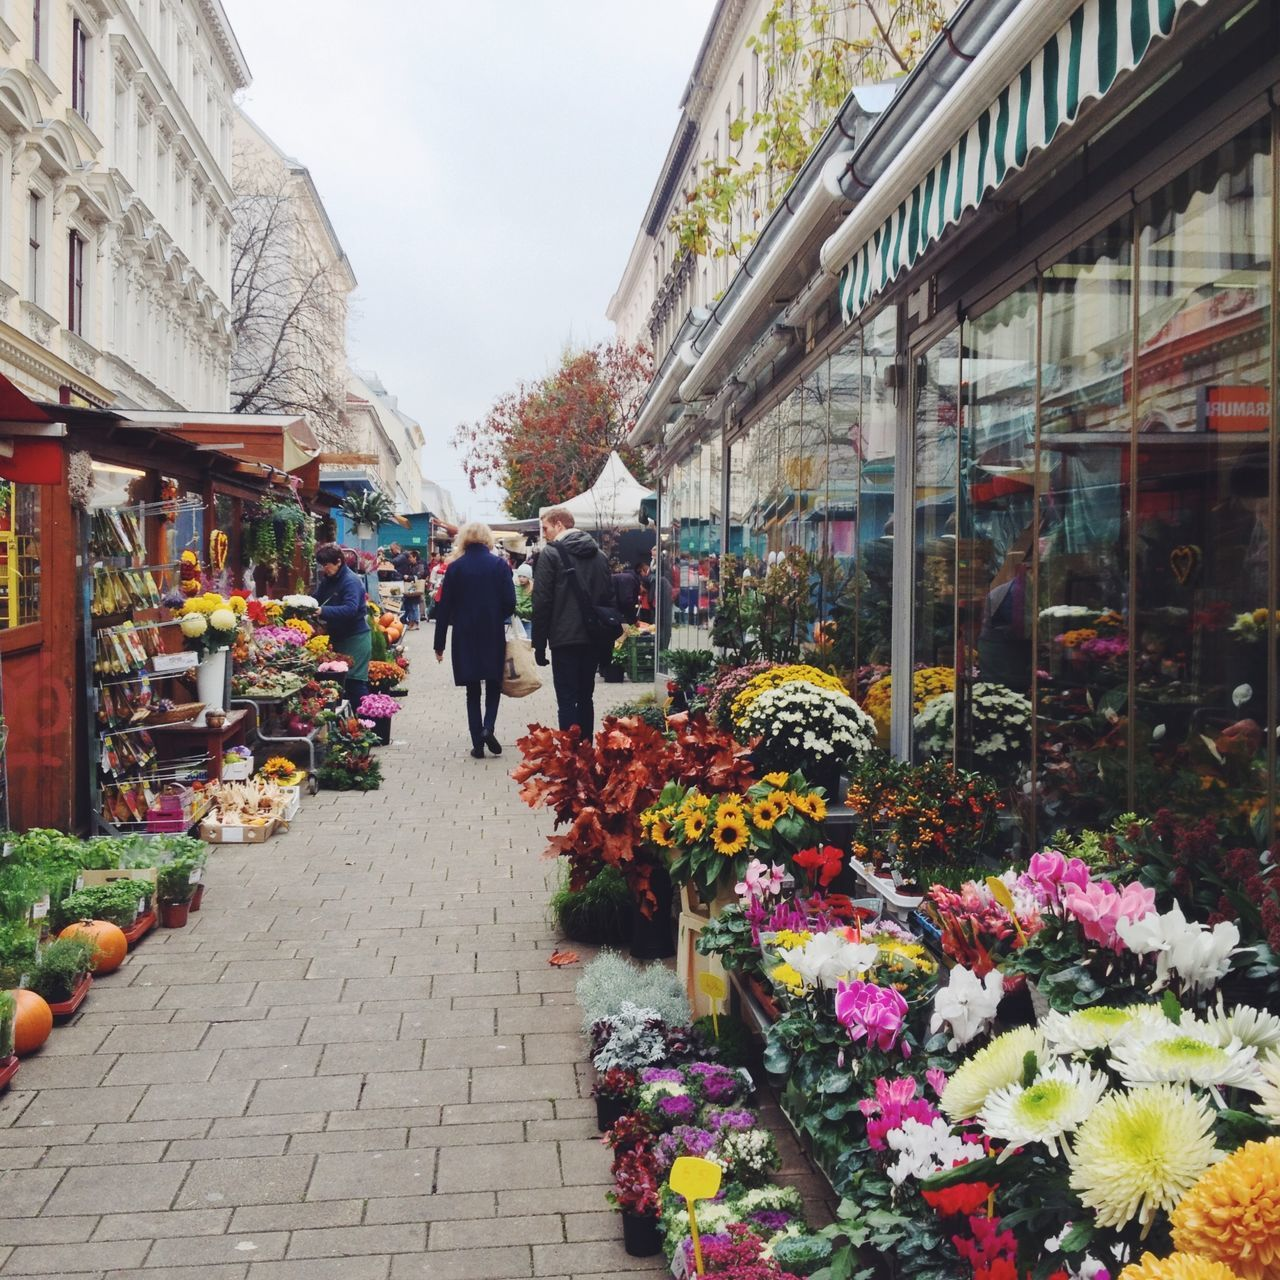 A beautiful walk through a Farmers Market in Vienna, Austria Austria City City Street Day Farmers Market Flower Flower Market Flower Shop Lifestyles Market Outdoors Real People Street Street Photography Travel Destinations Vienna